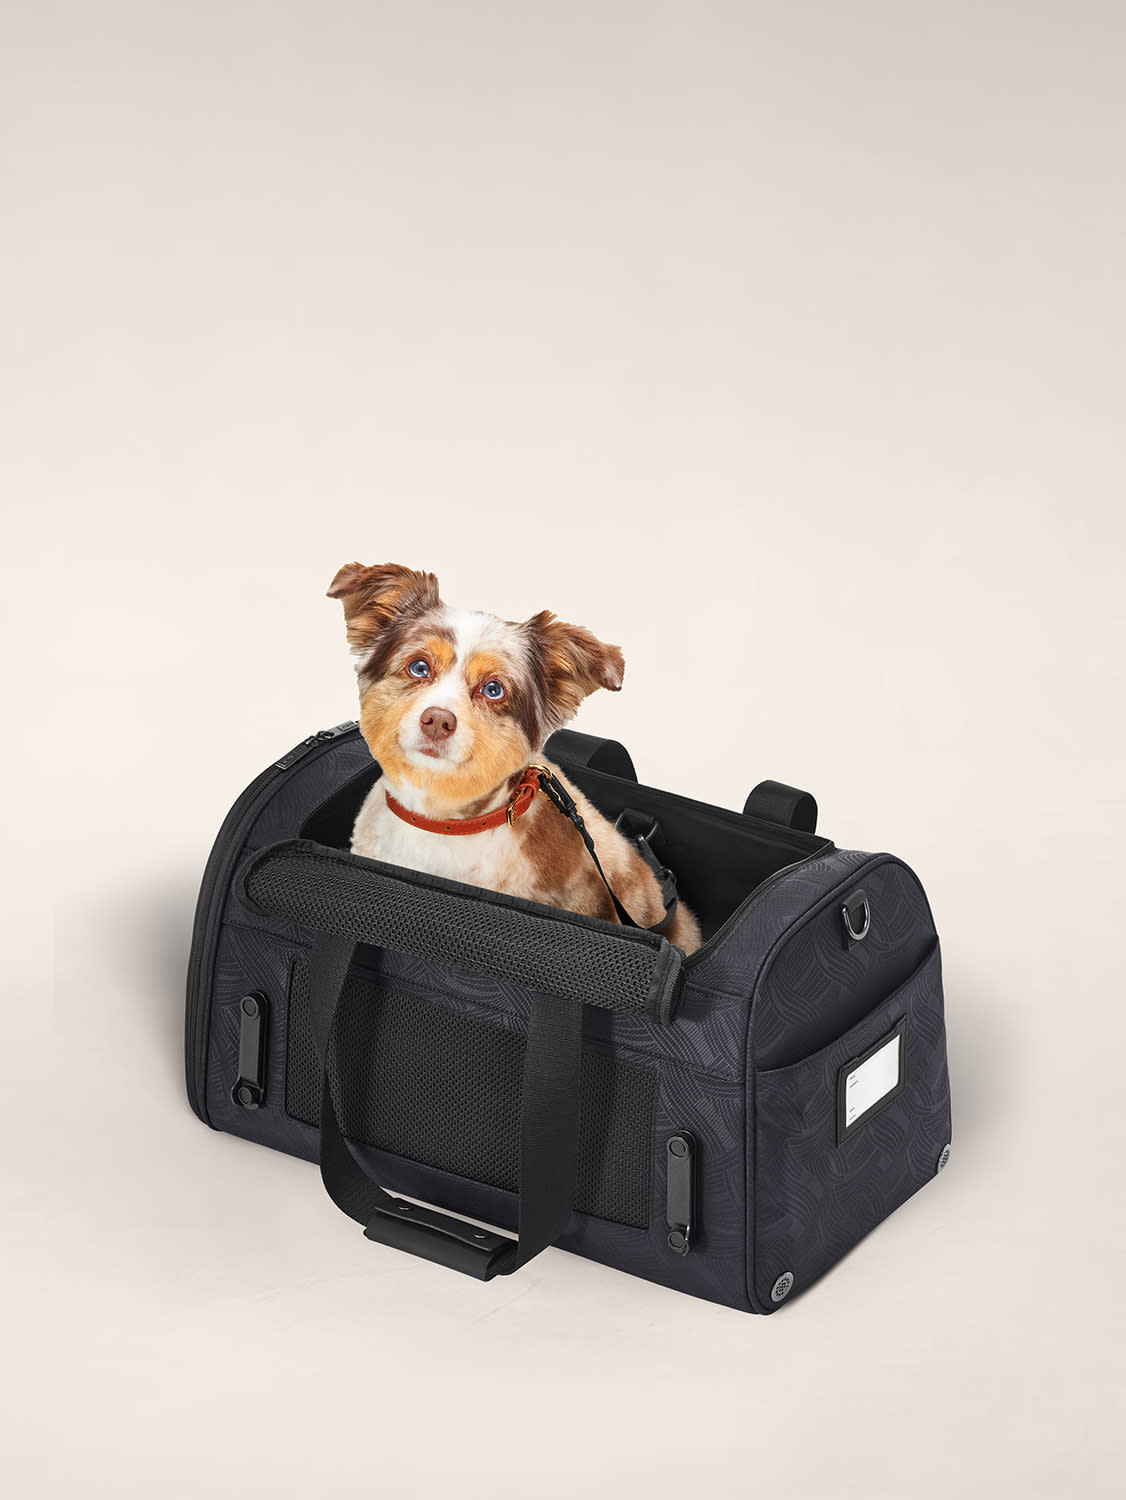 A furry dog peeking from the top of an airline pet carrier.